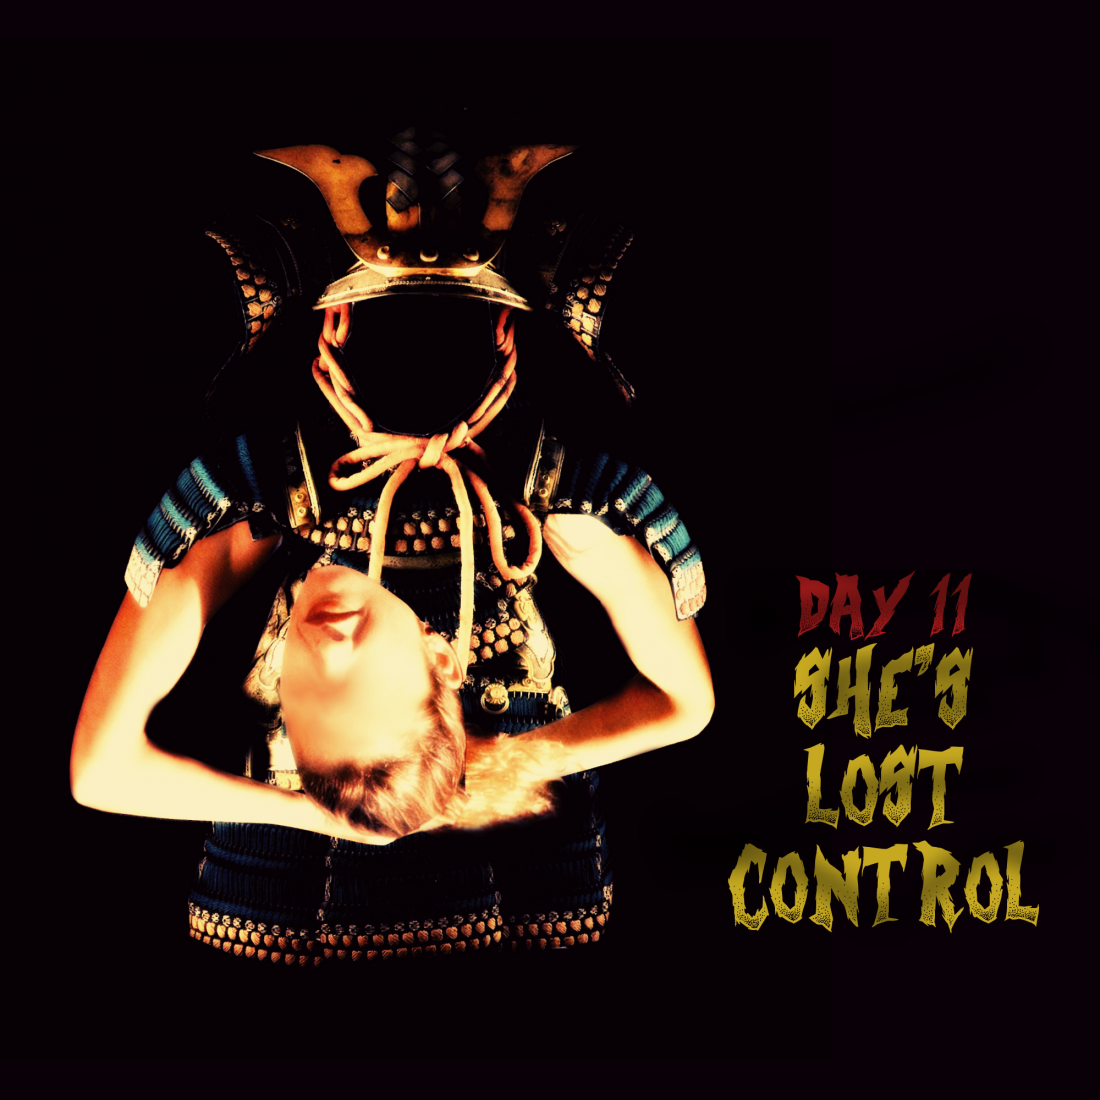 drawlloween-11-shes-lost-control